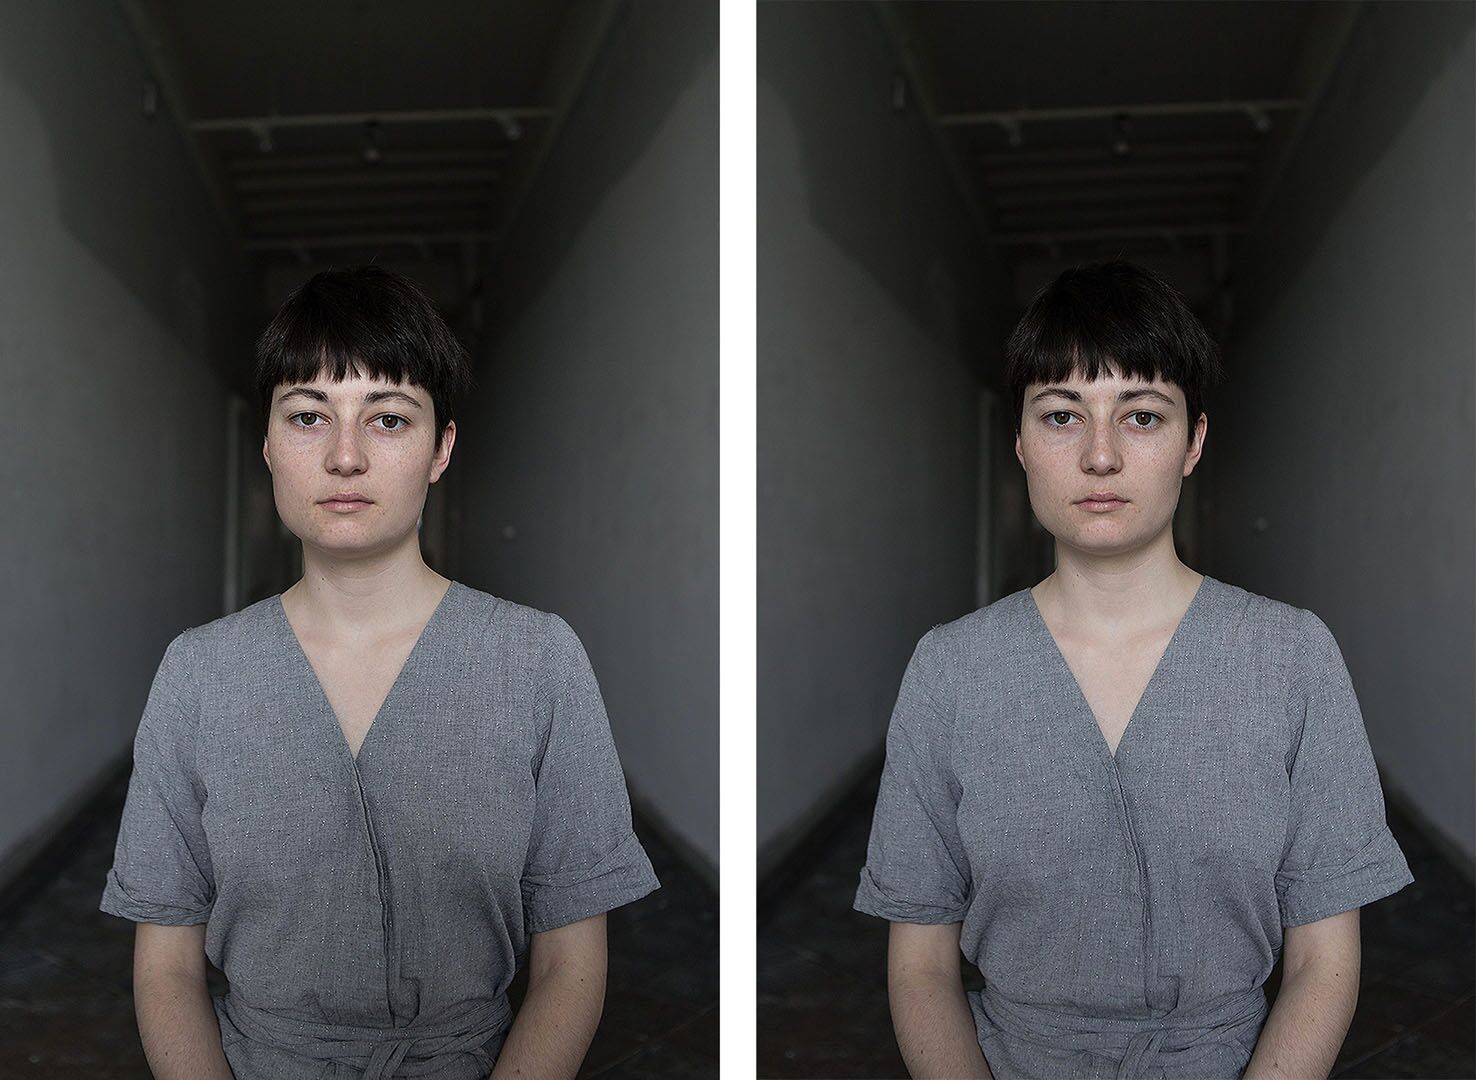 Kim Gihoon,Portrait of non identity,2016,photography, diytic, 66 x 100 cm, Courtesy Kim Gihoon